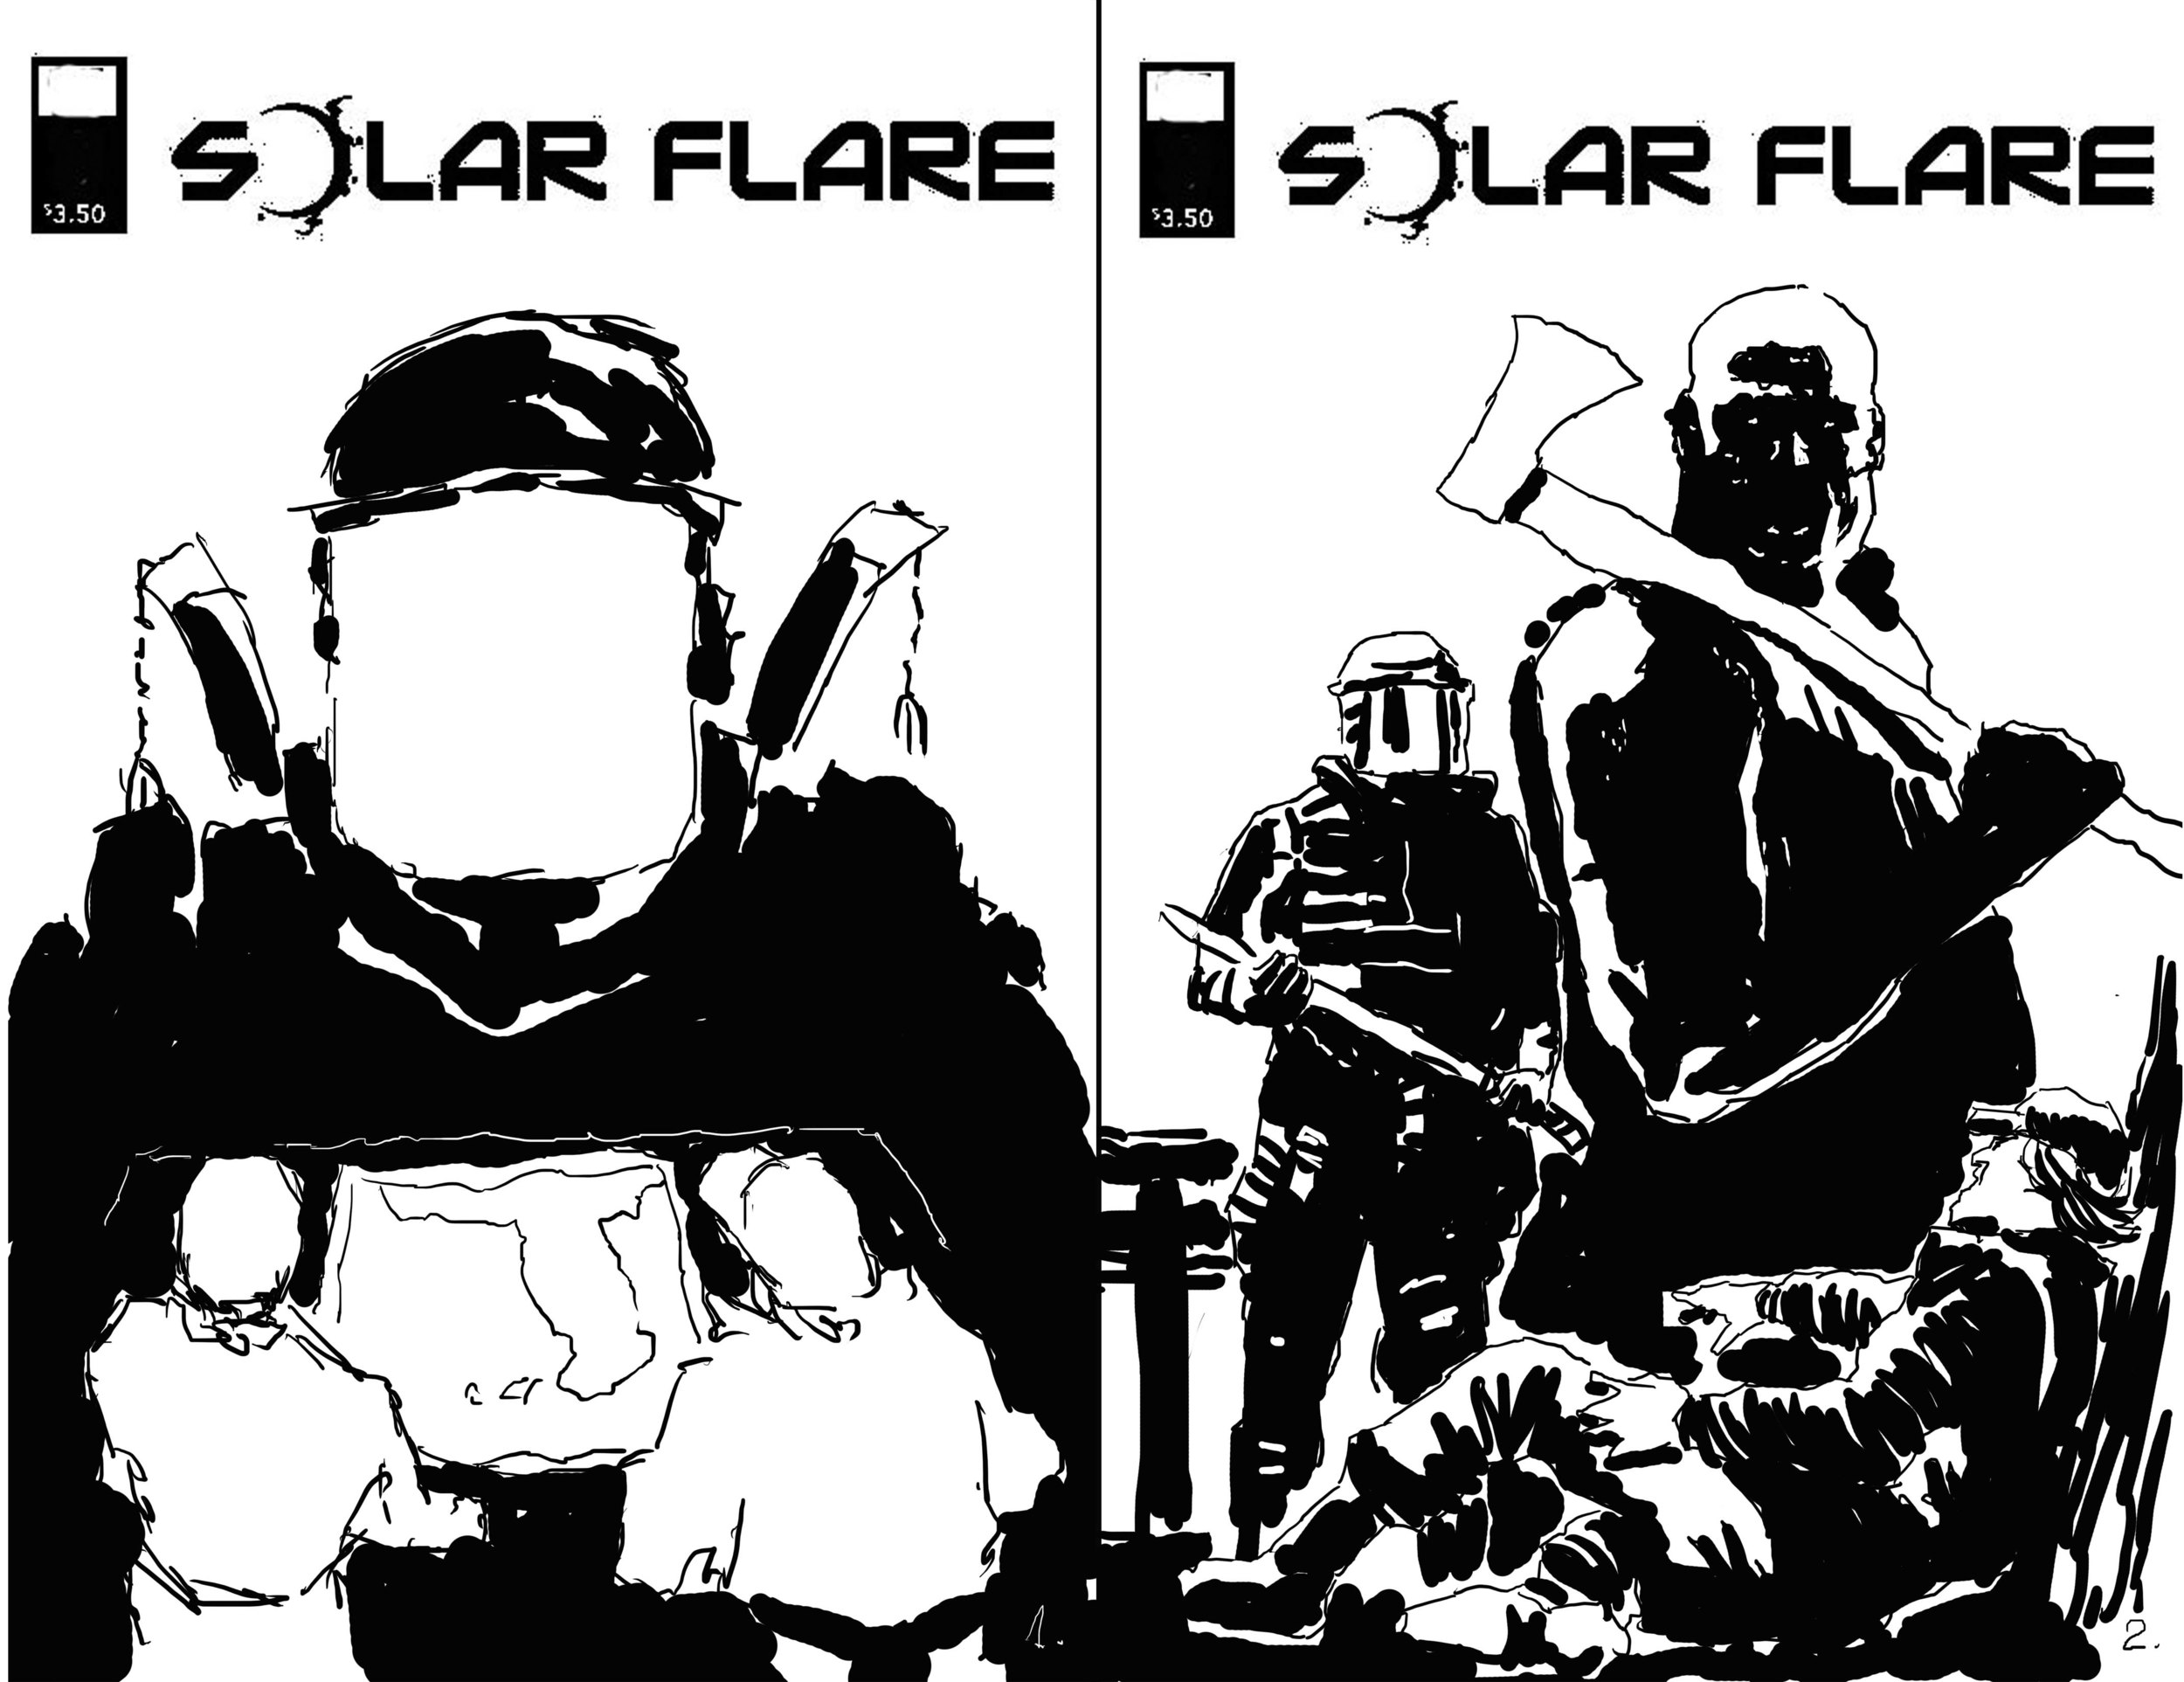 Solar Flare #5 - Covers Layout.jpg